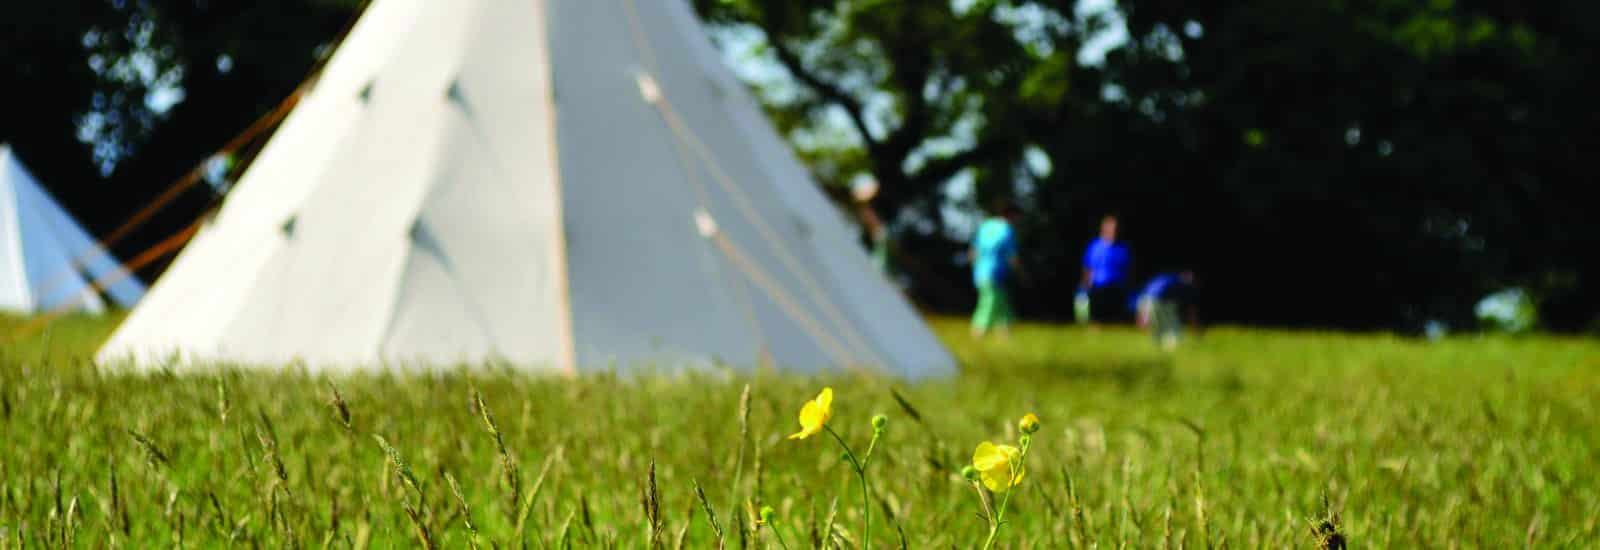 EXTENDED OFFER – 15% OFF your booking at Camp Cleavel Tipi Village